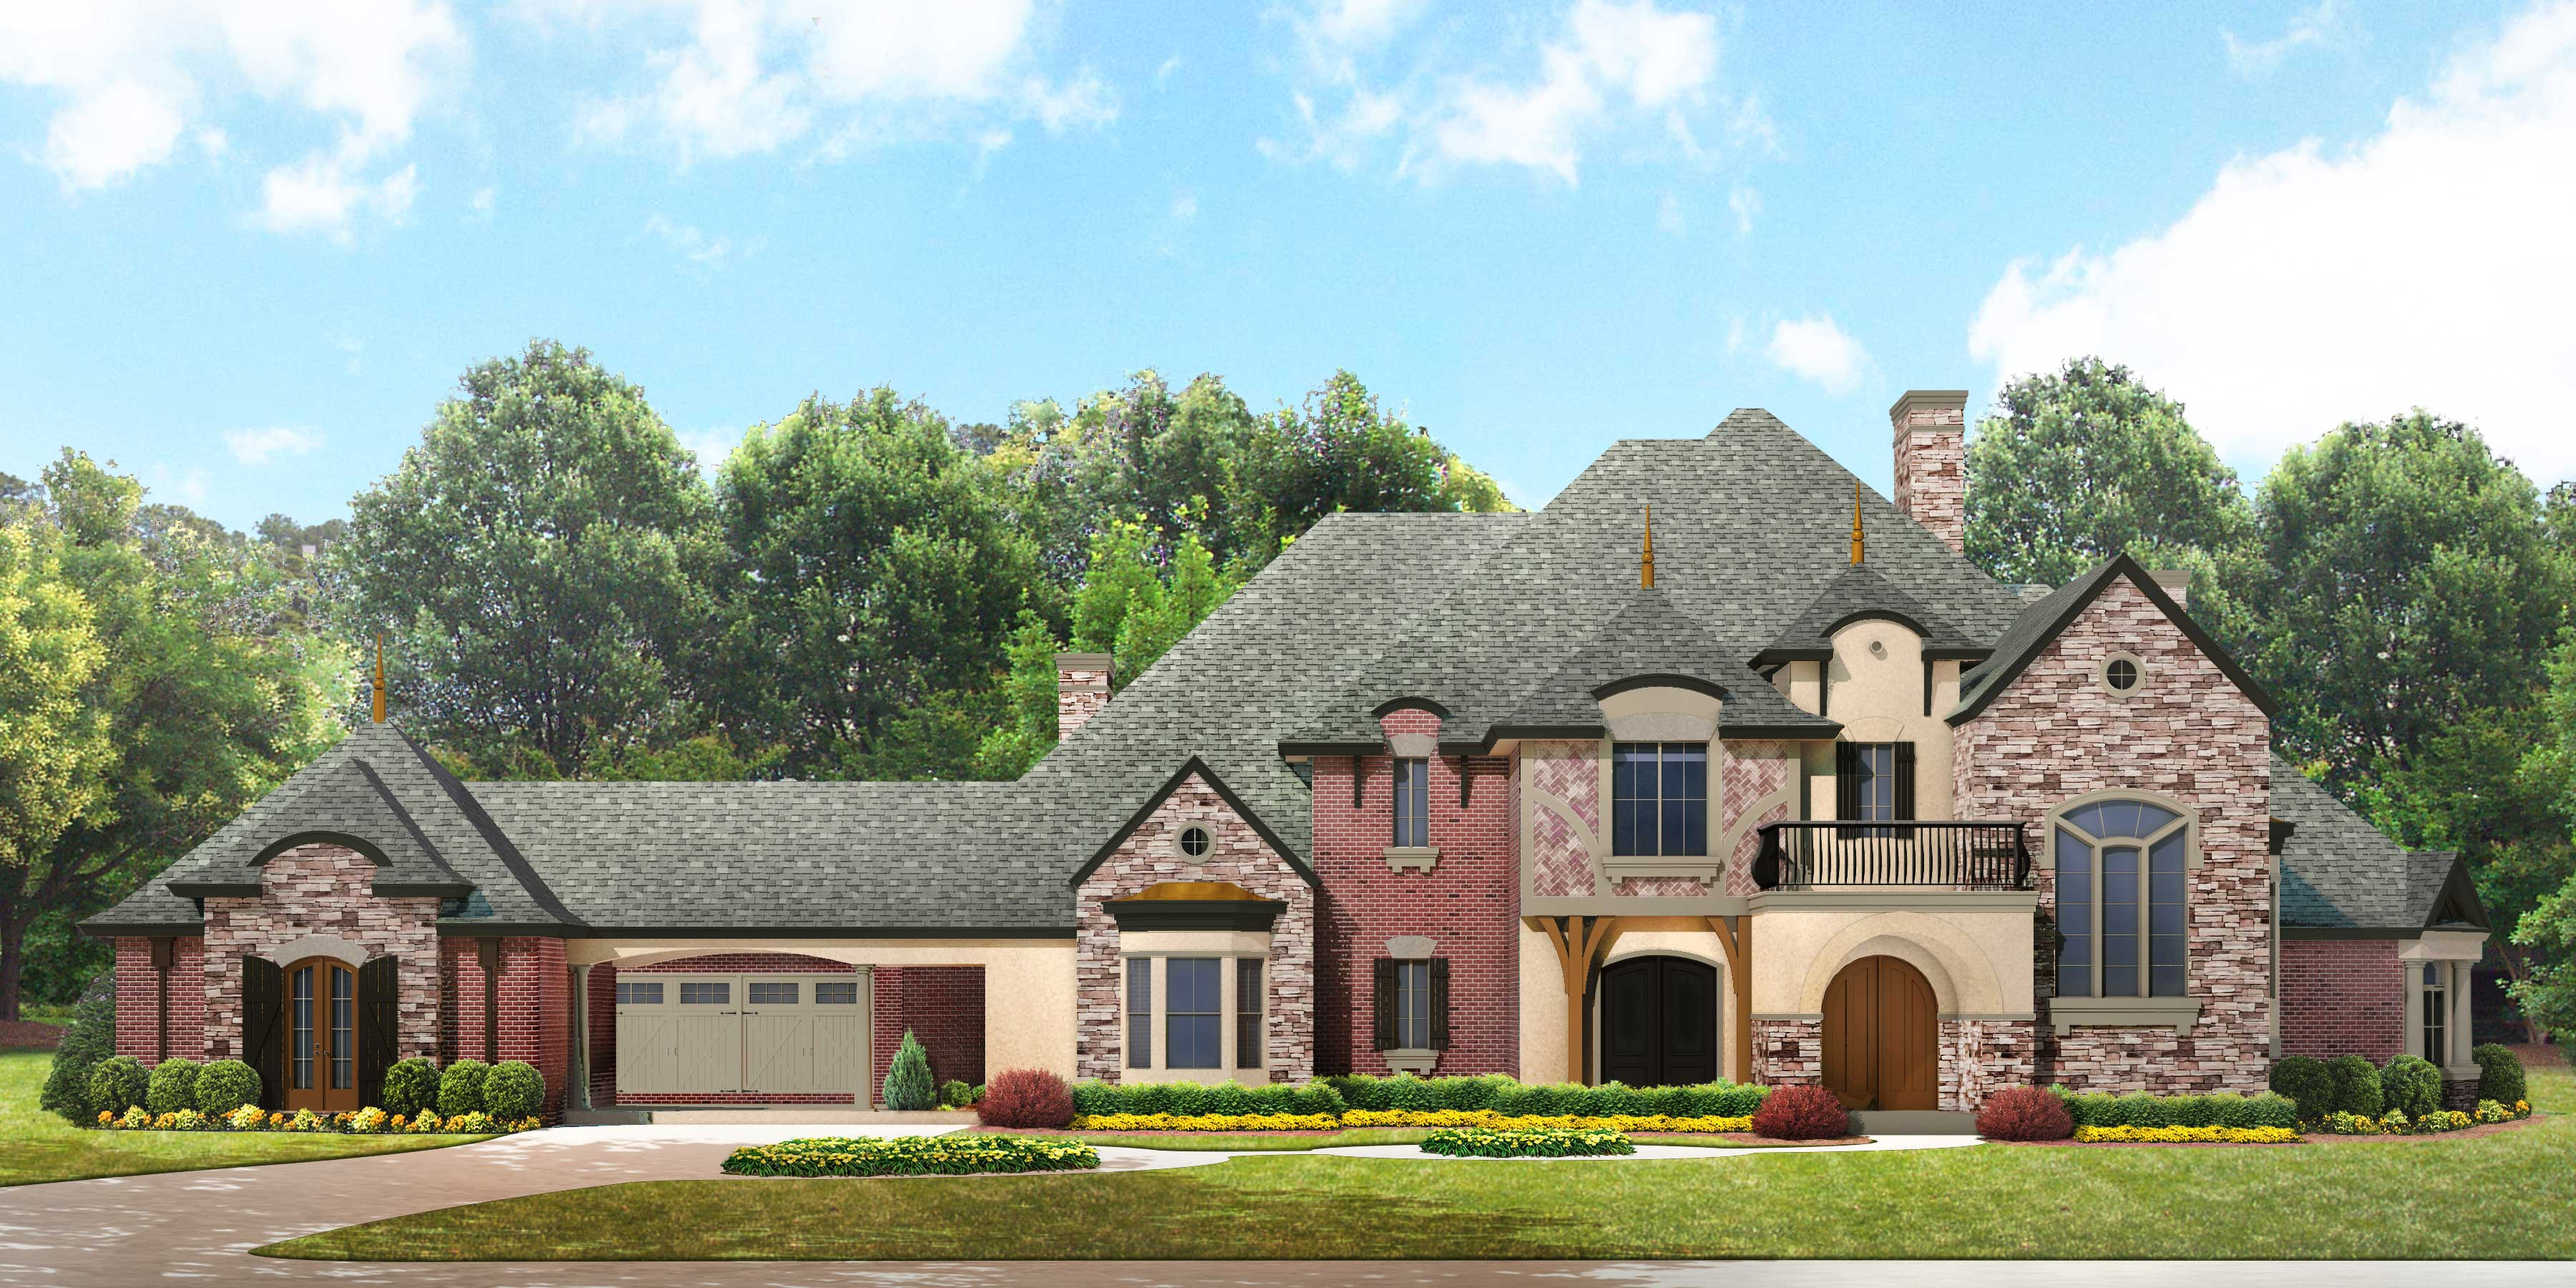 European manor house plan 134 1350 4 bedrm 5303 sq ft for Luxury plan